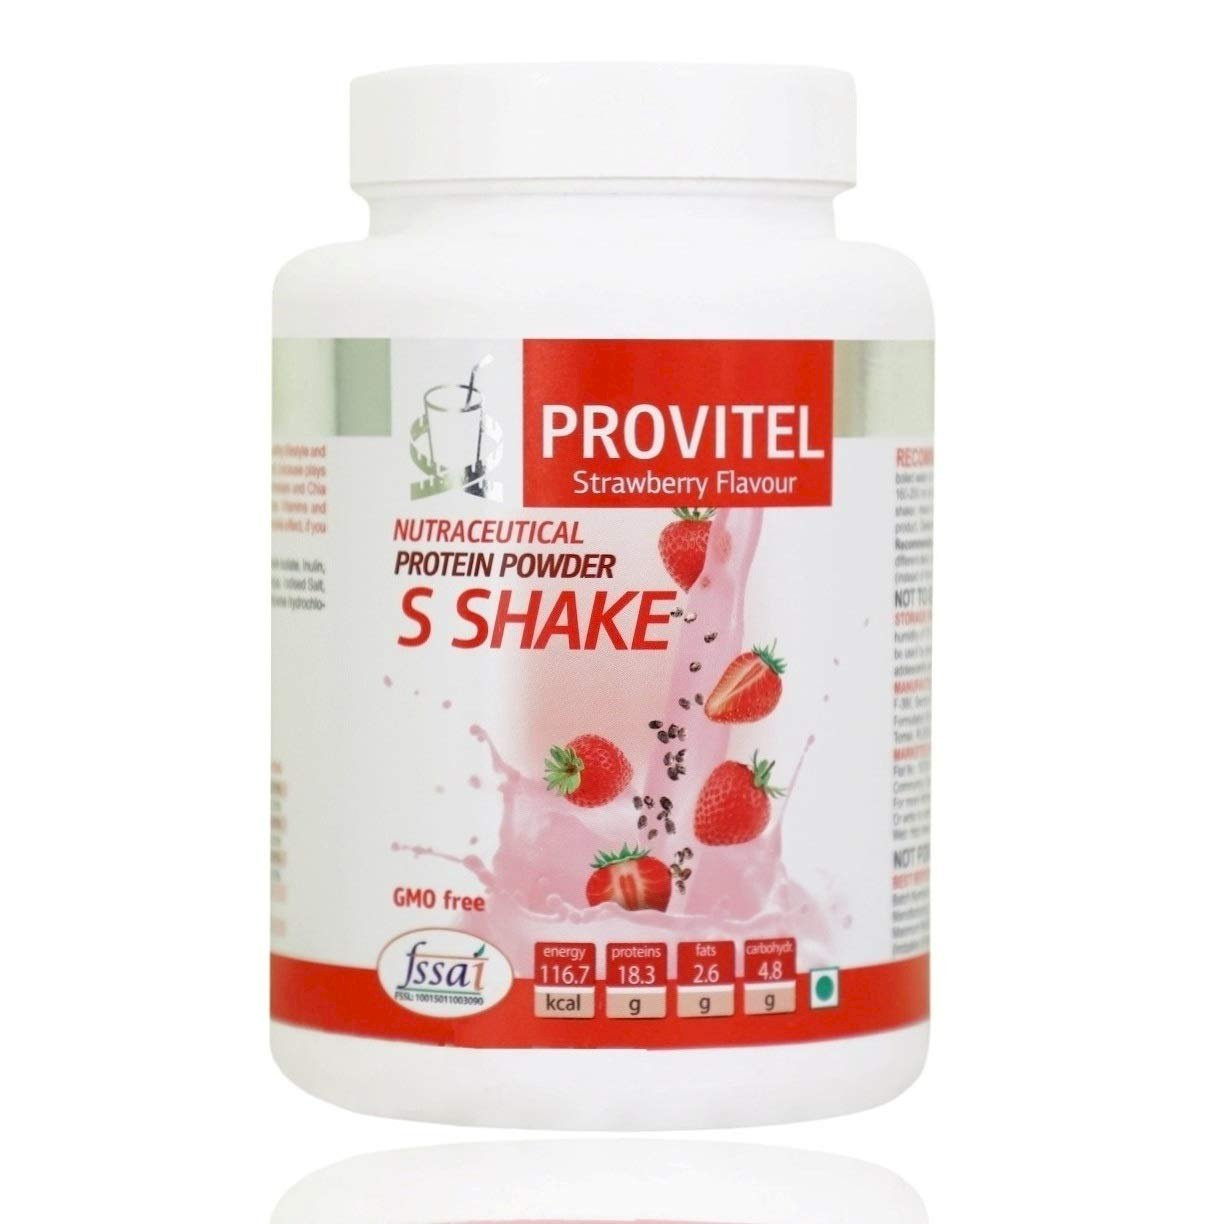 ArtLife  Protein Powder (S Shake) - (Helps in Burning Excess Body Fat, Control Appetite, Loose Weight) (500 Grams) -  Strawberry Flavour.